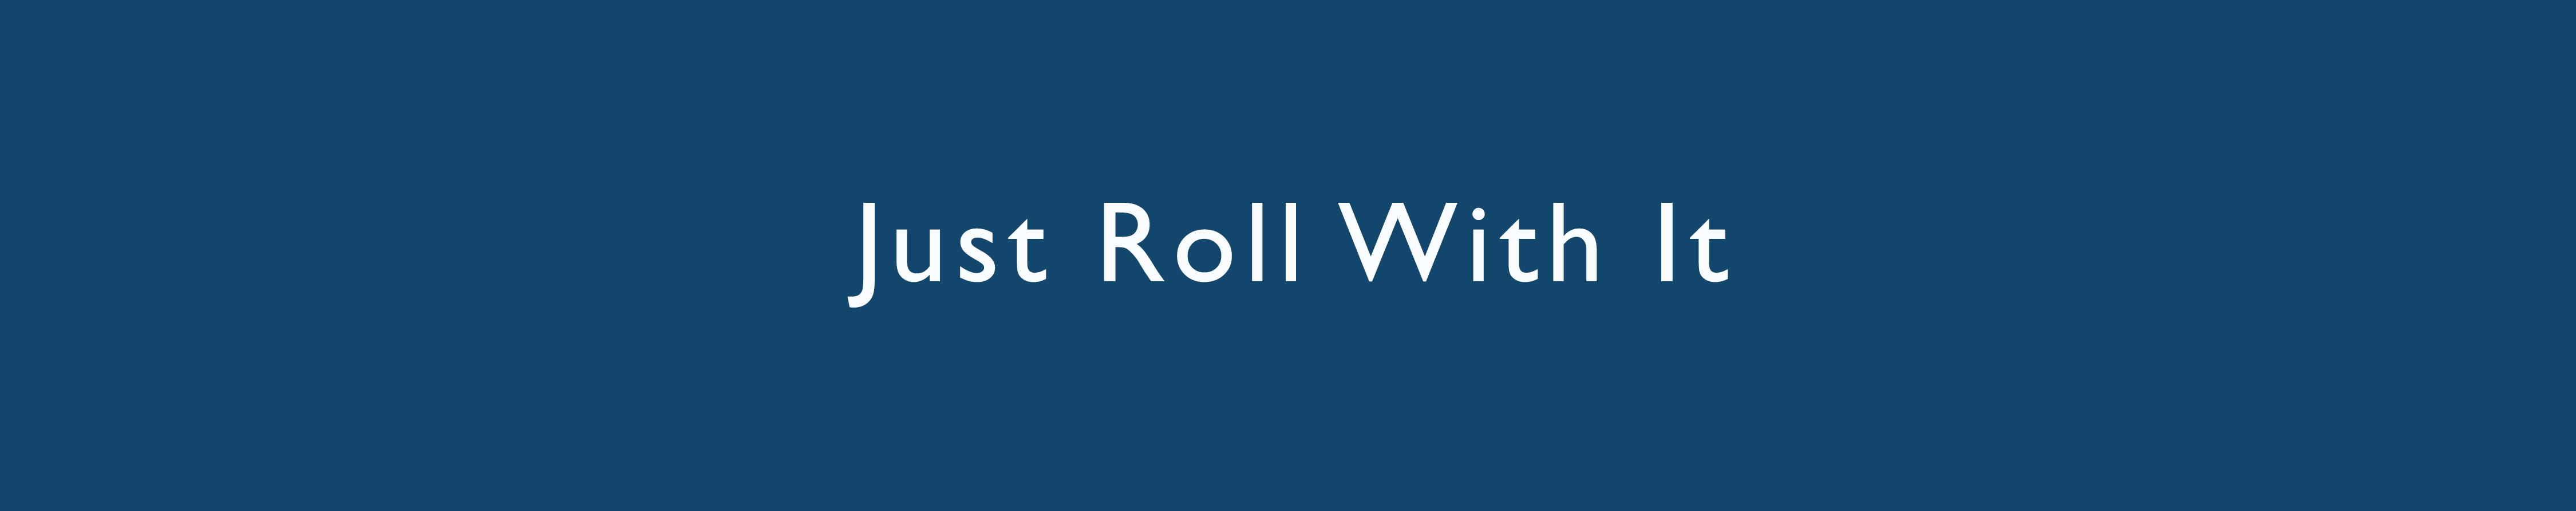 Just Roll With It book